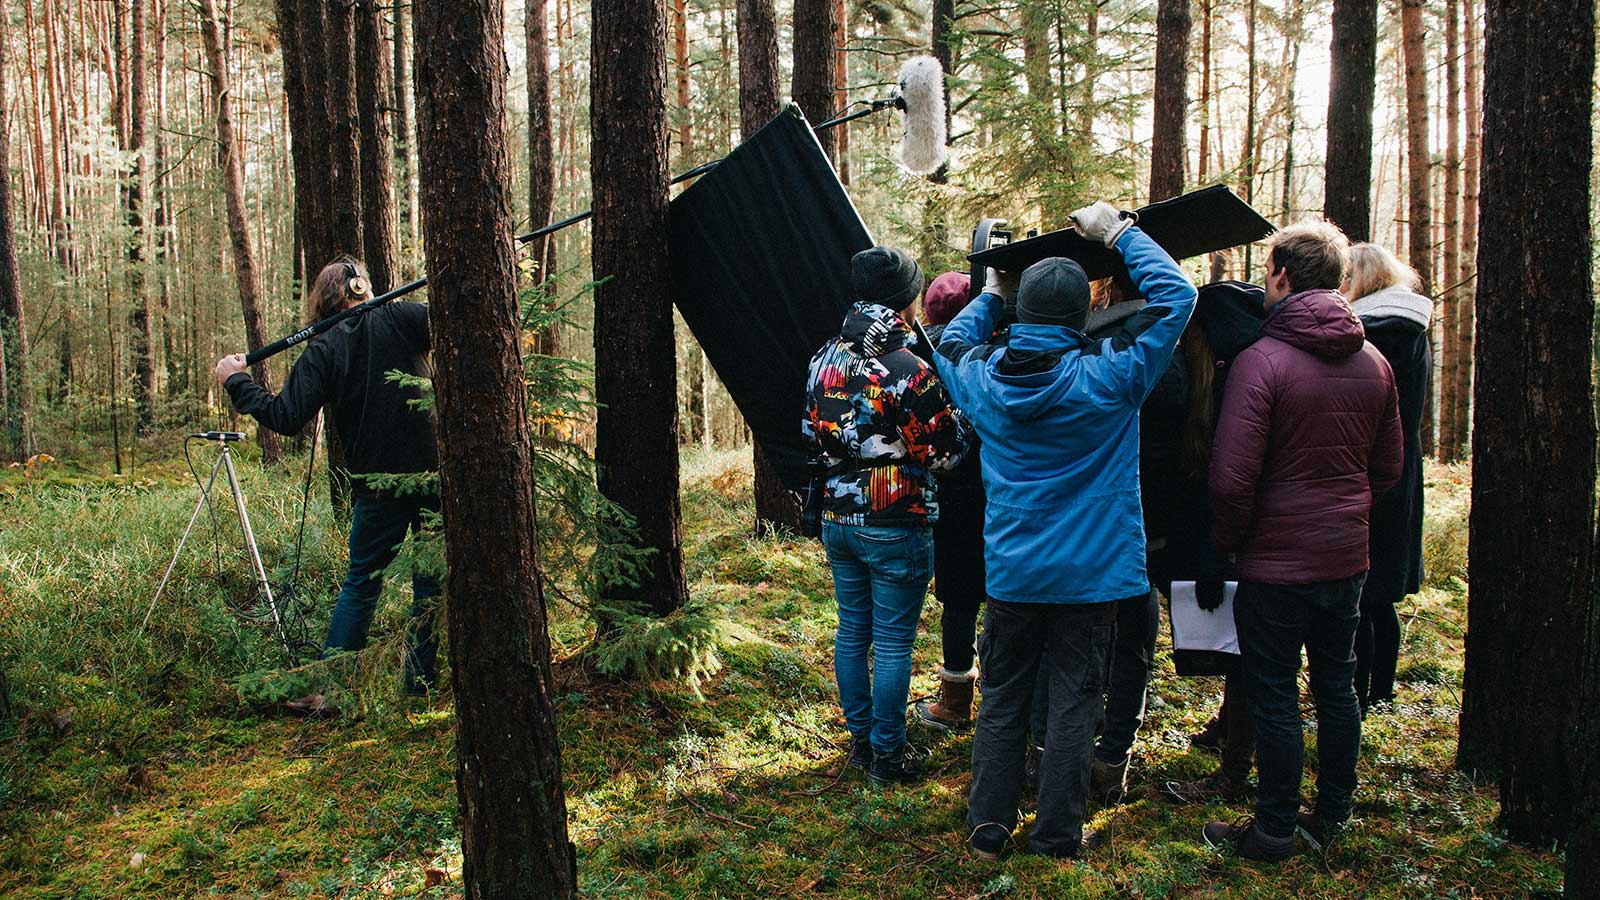 A group of people stand outside filming in a forest.